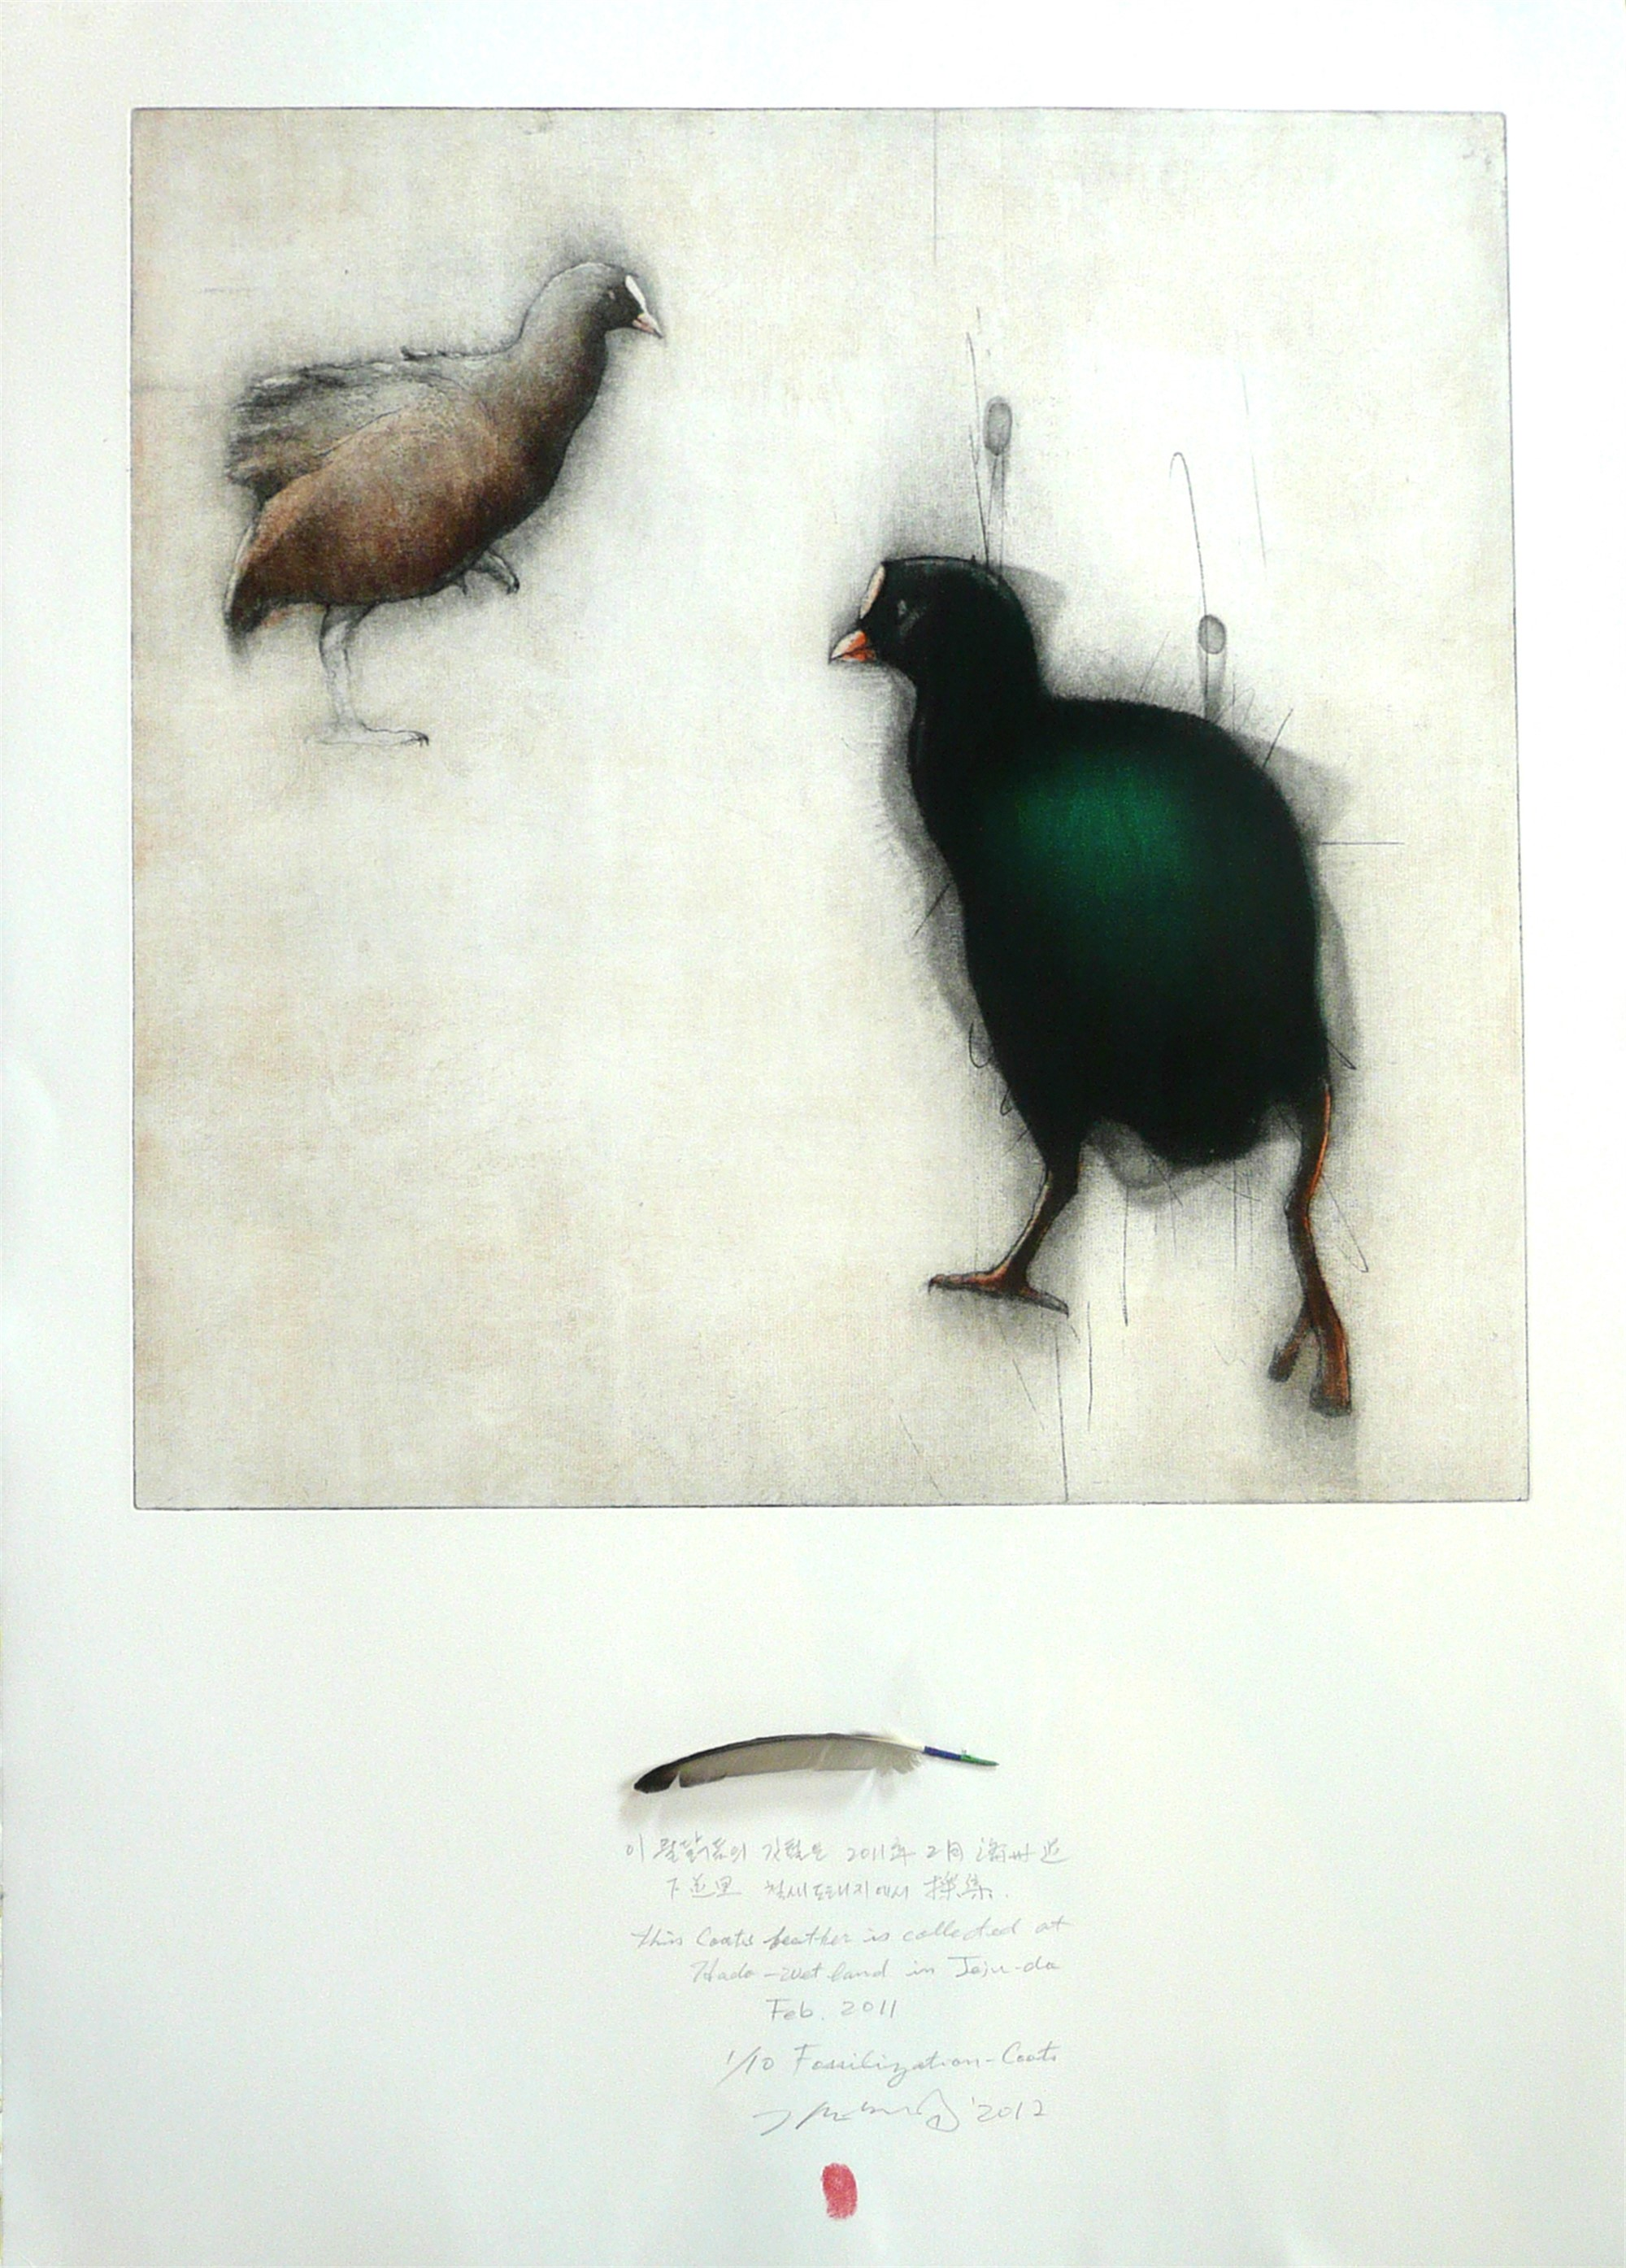 Fossilization: Coots (Artist's Proof) by Gilchun Koh